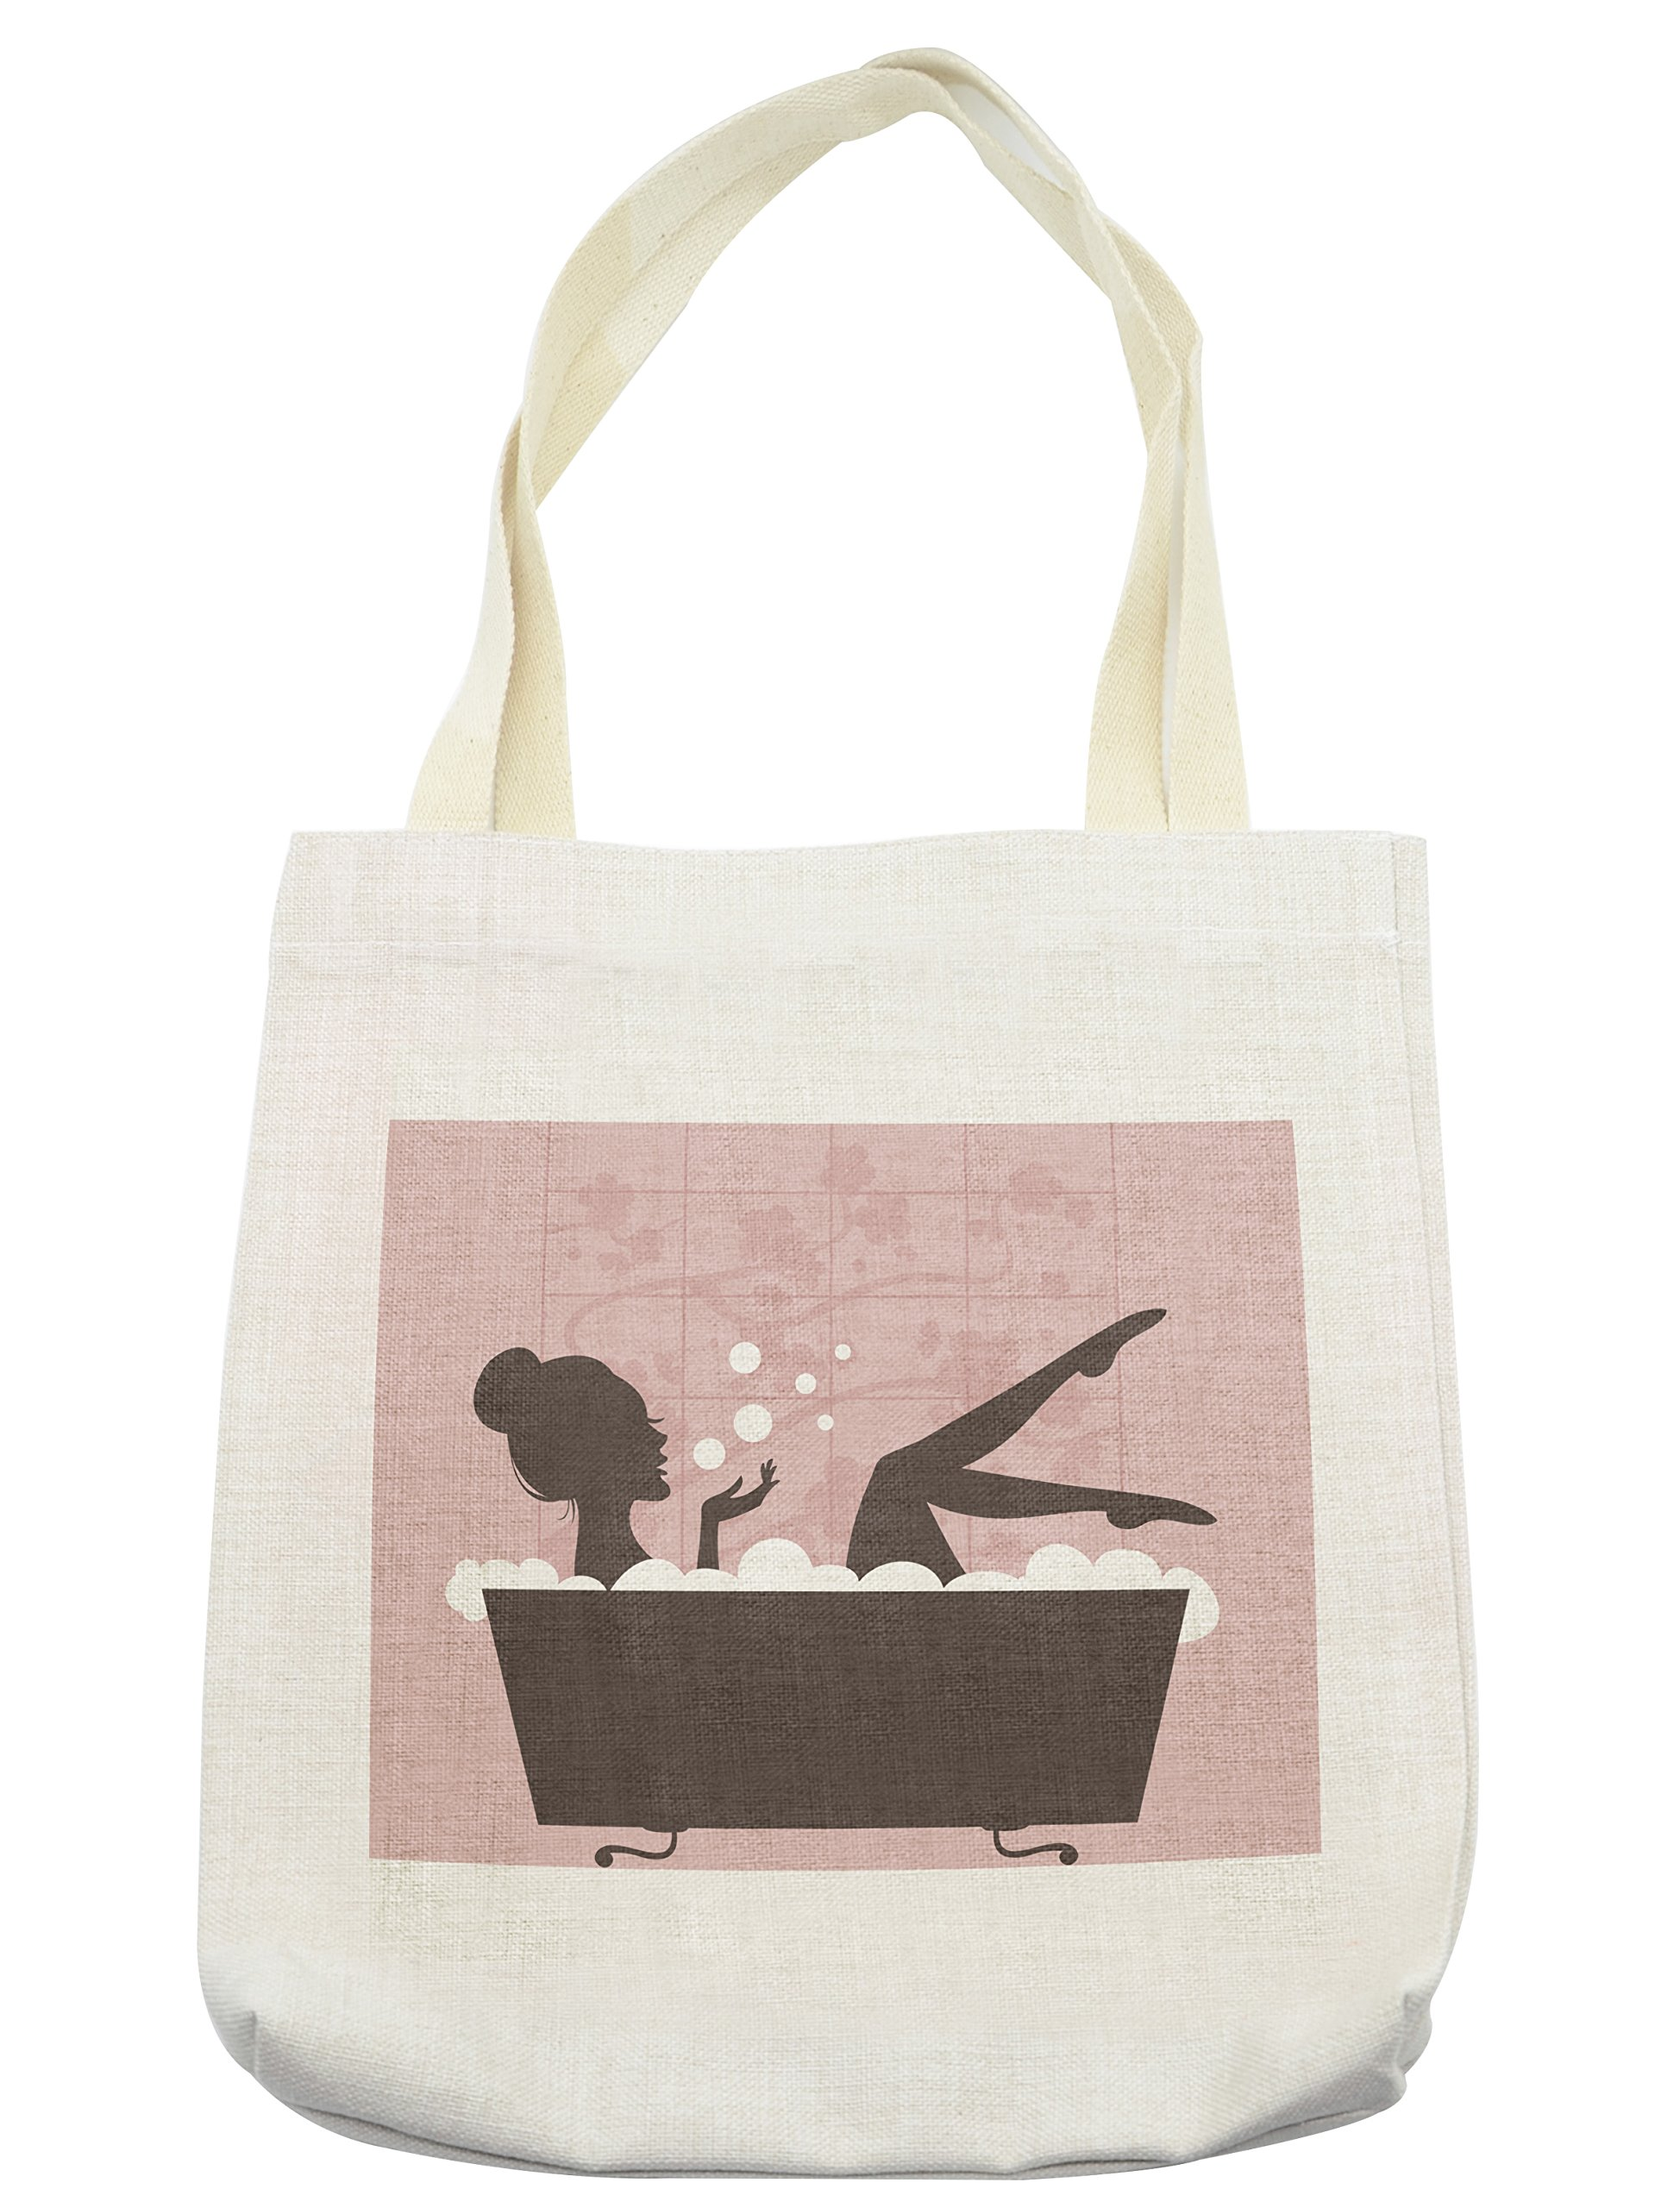 Lunarable Teens Girls Tote Bag, Beautiful Woman in Bath Tub Spa Treatment Relaxing Concept Vintage Style, Cloth Linen Reusable Bag for Shopping Groceries Books Beach Travel & More, Cream